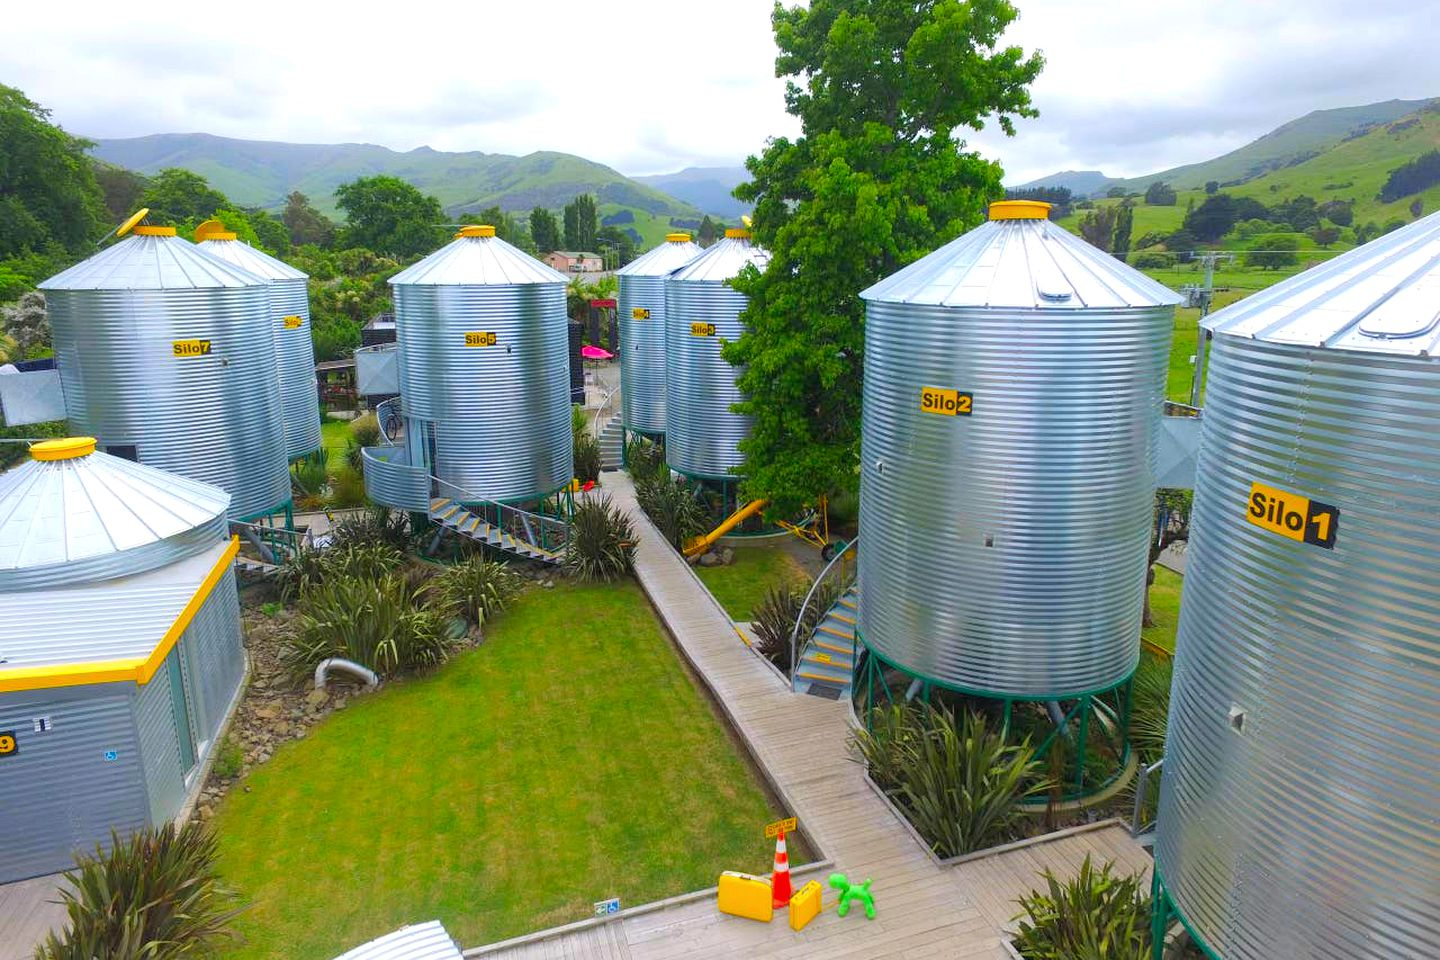 Truly unique silo accommodation that's ideal for glamping near Christchurch